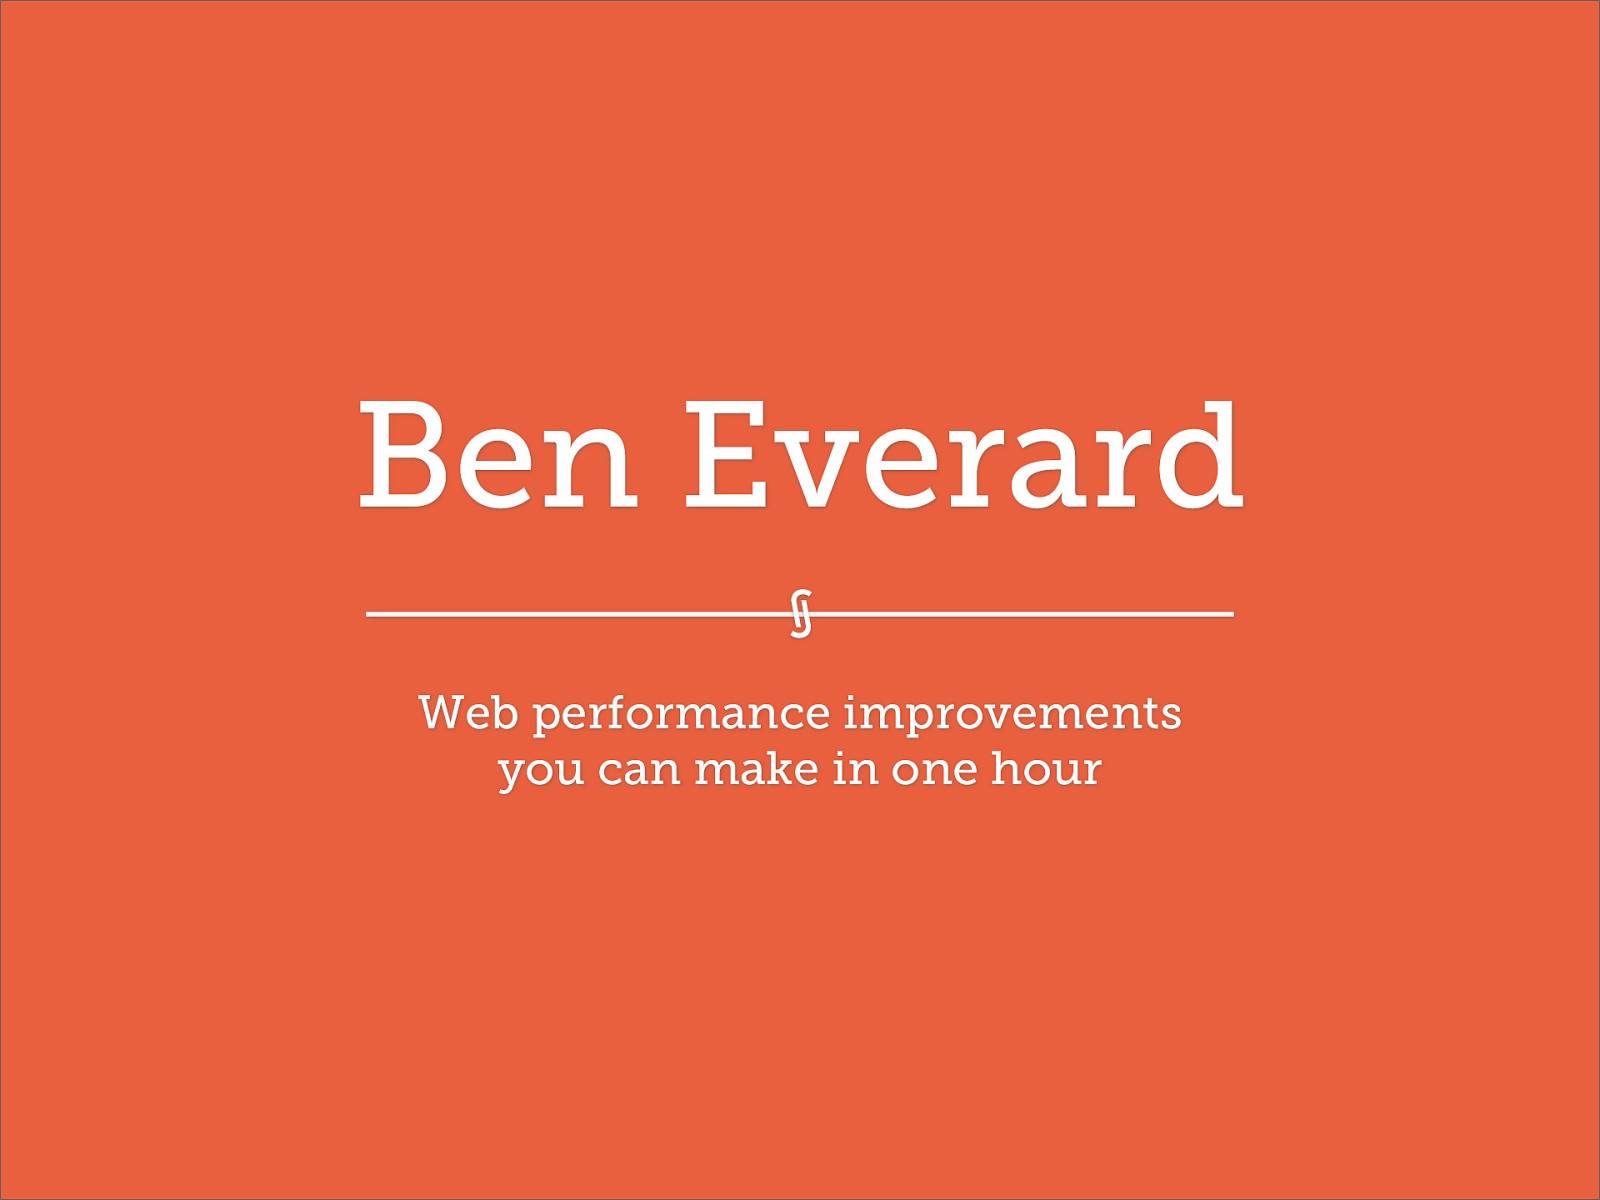 Web Performance Improvements In One Hour